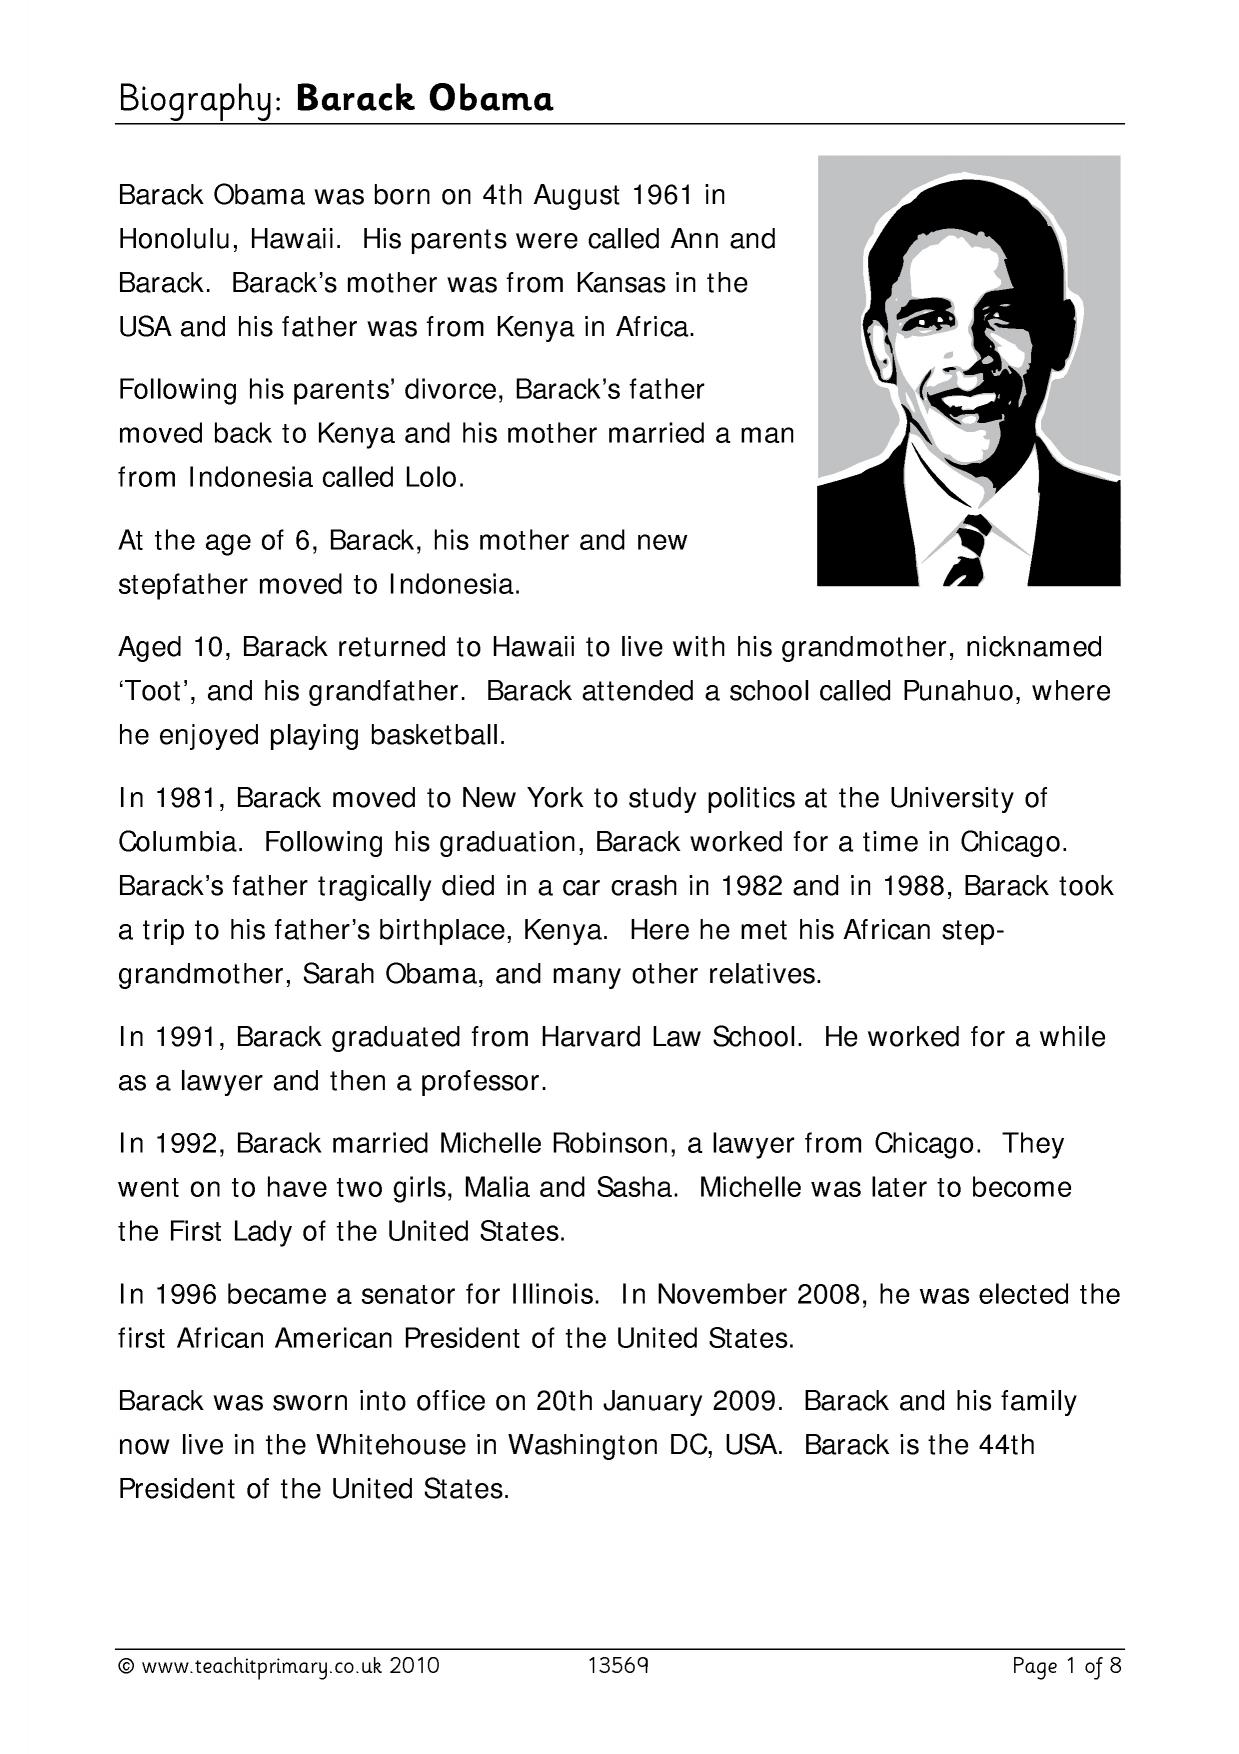 Roald Dahl Biography Ks2 Planning Biography Ks2 Word Bank Biography Barack Obama Biography